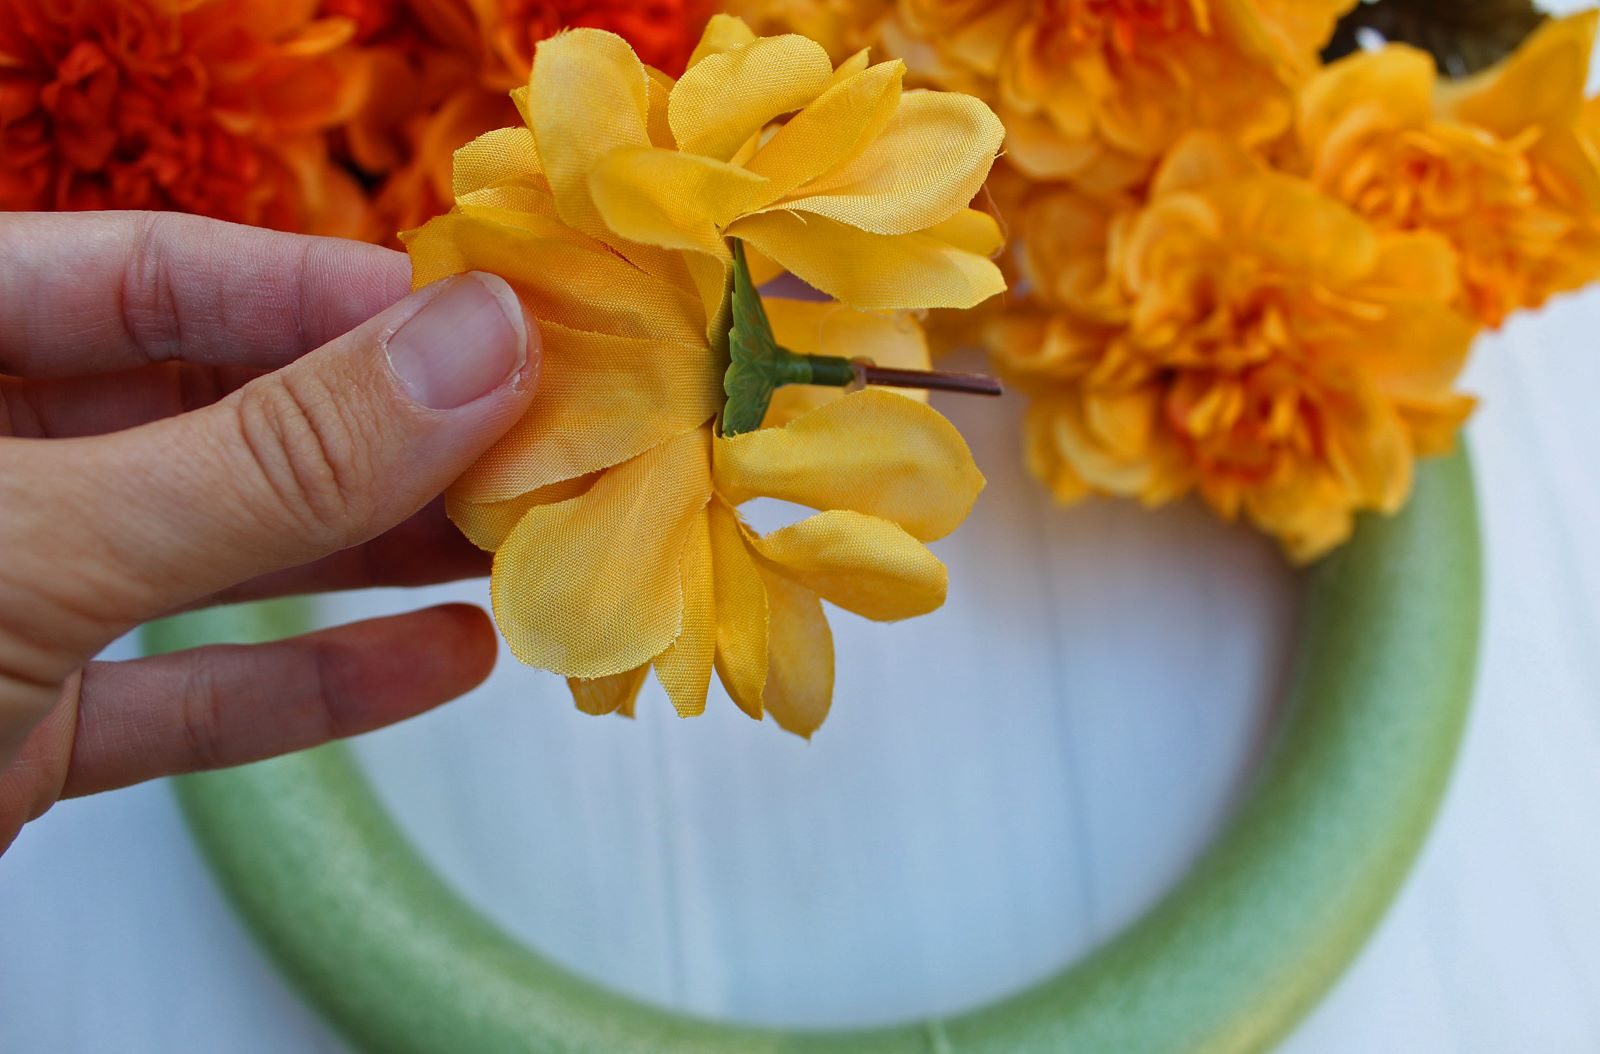 cut floral stems to stick in diy wreath 1